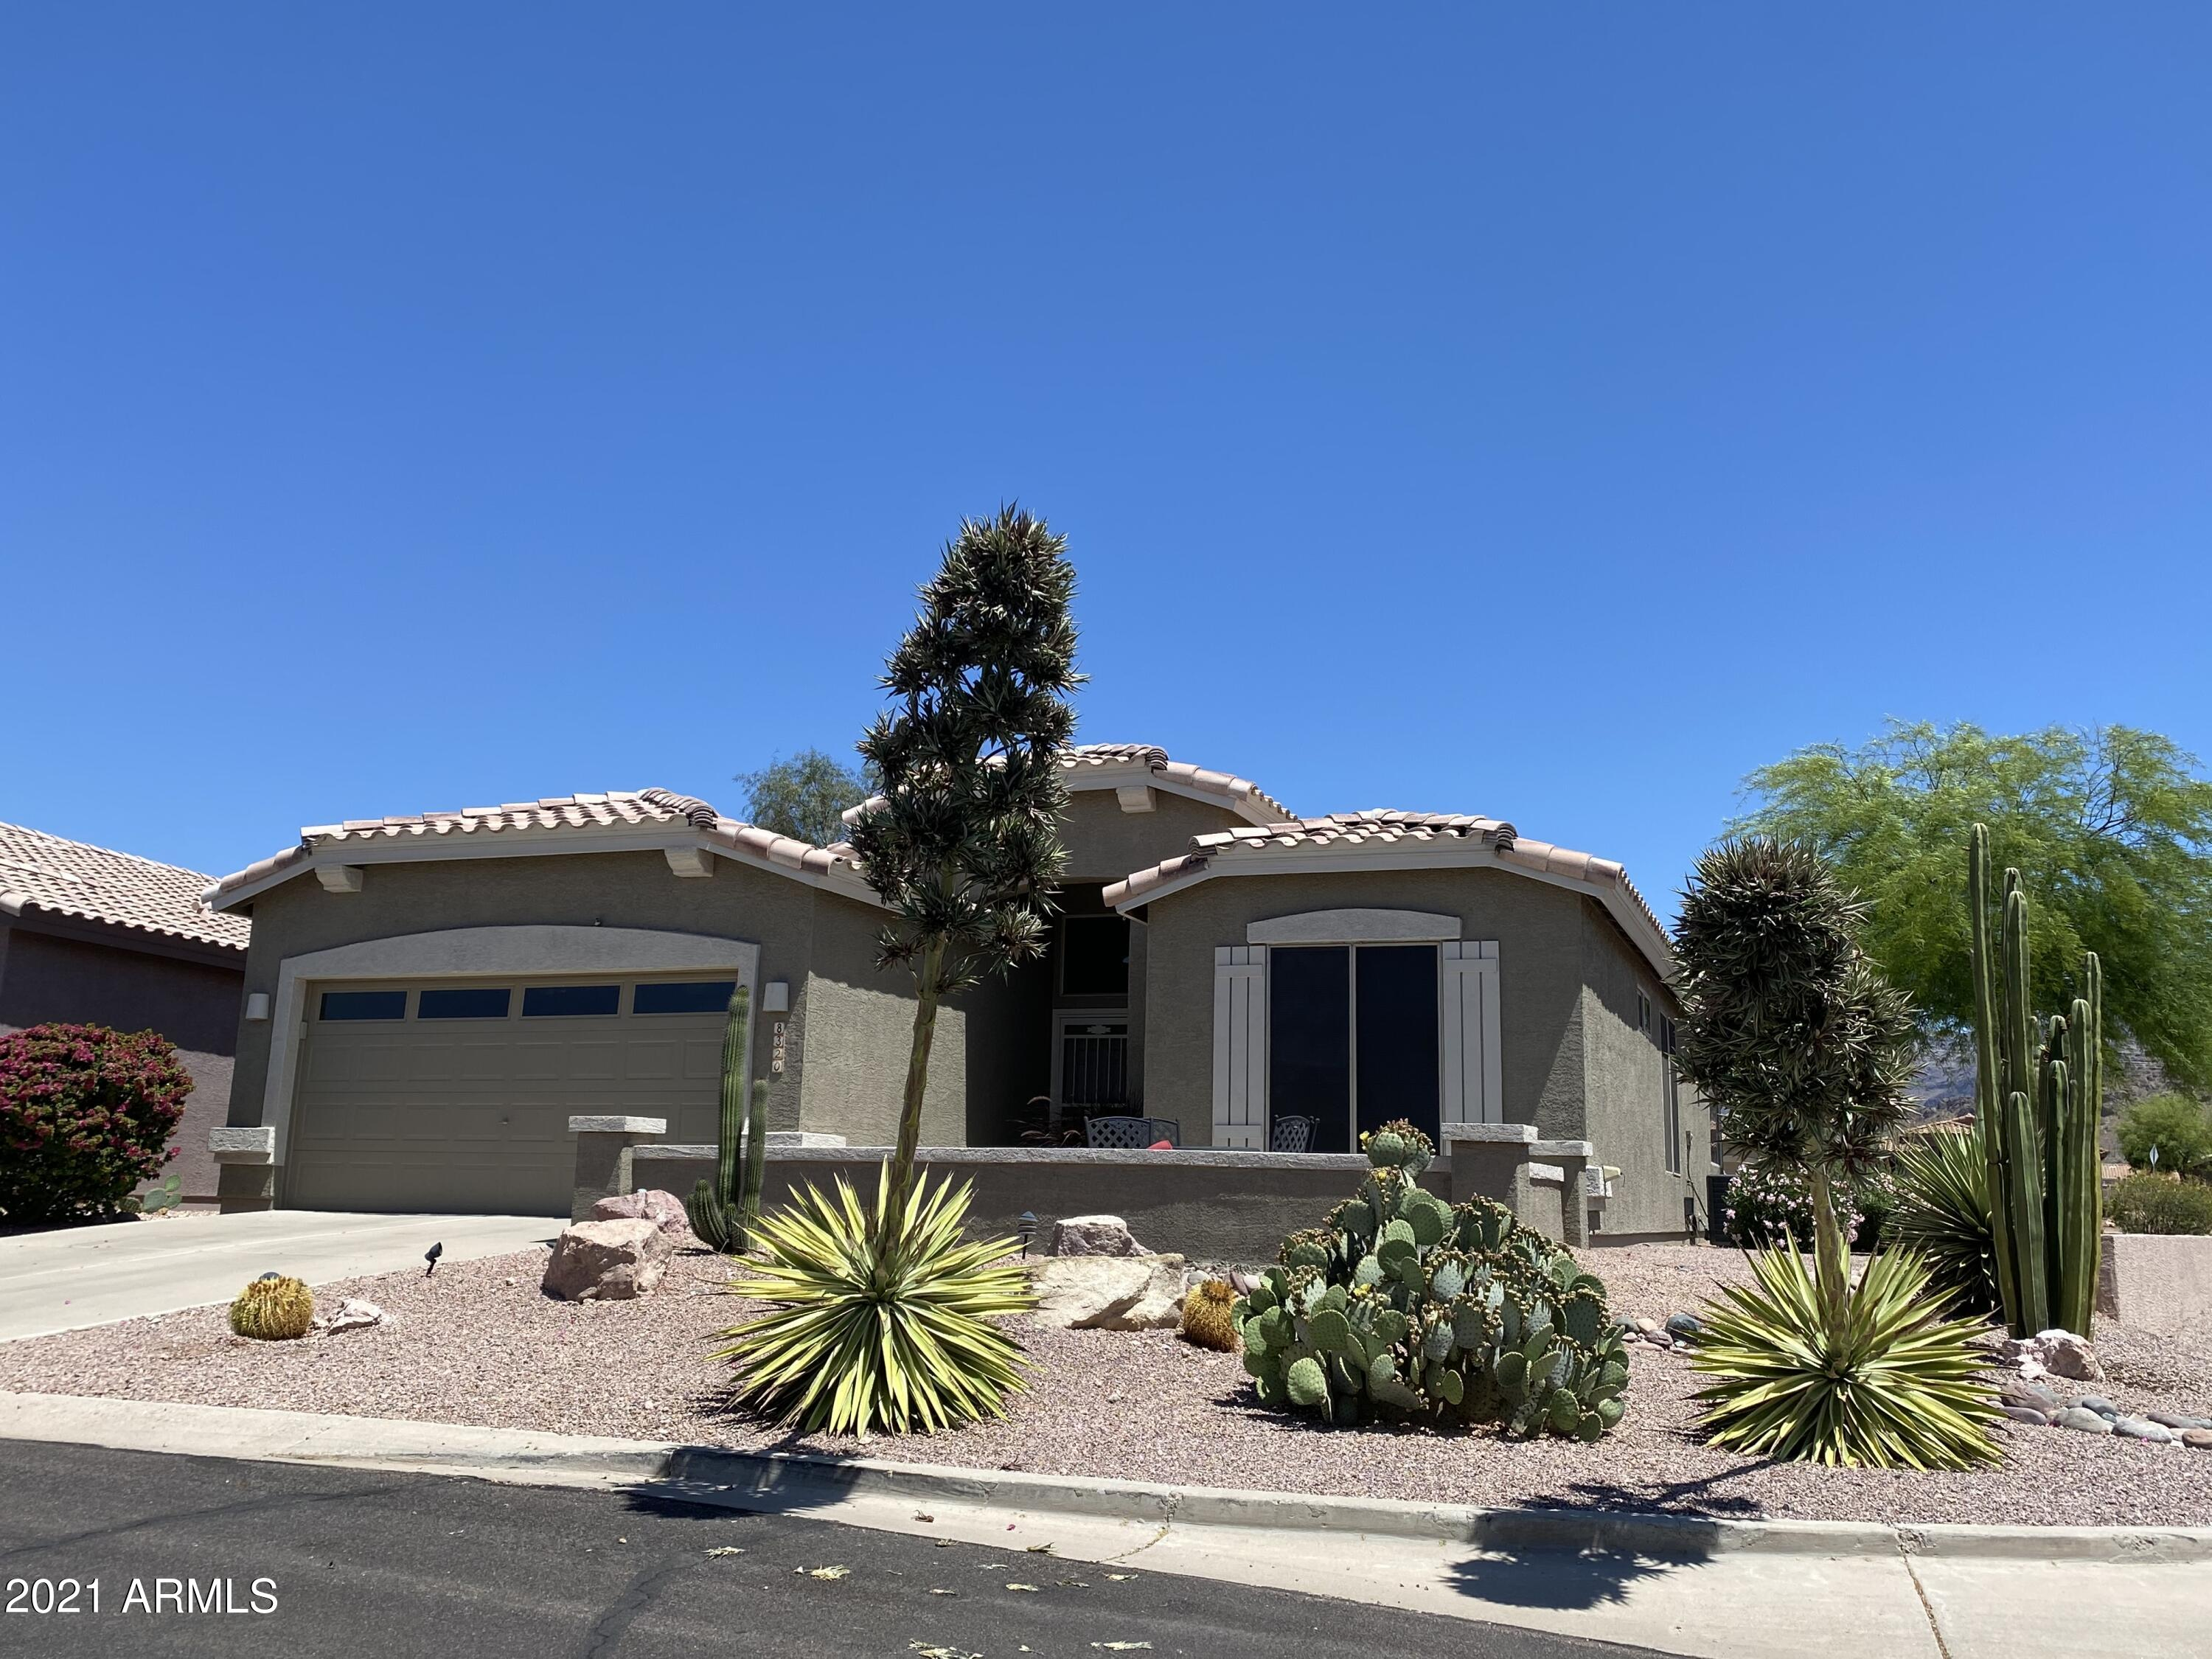 8320 E MASTERS Road, Gold Canyon, AZ 85118, 3 Bedrooms Bedrooms, ,Residential Lease,For Rent,8320 E MASTERS Road,6238138